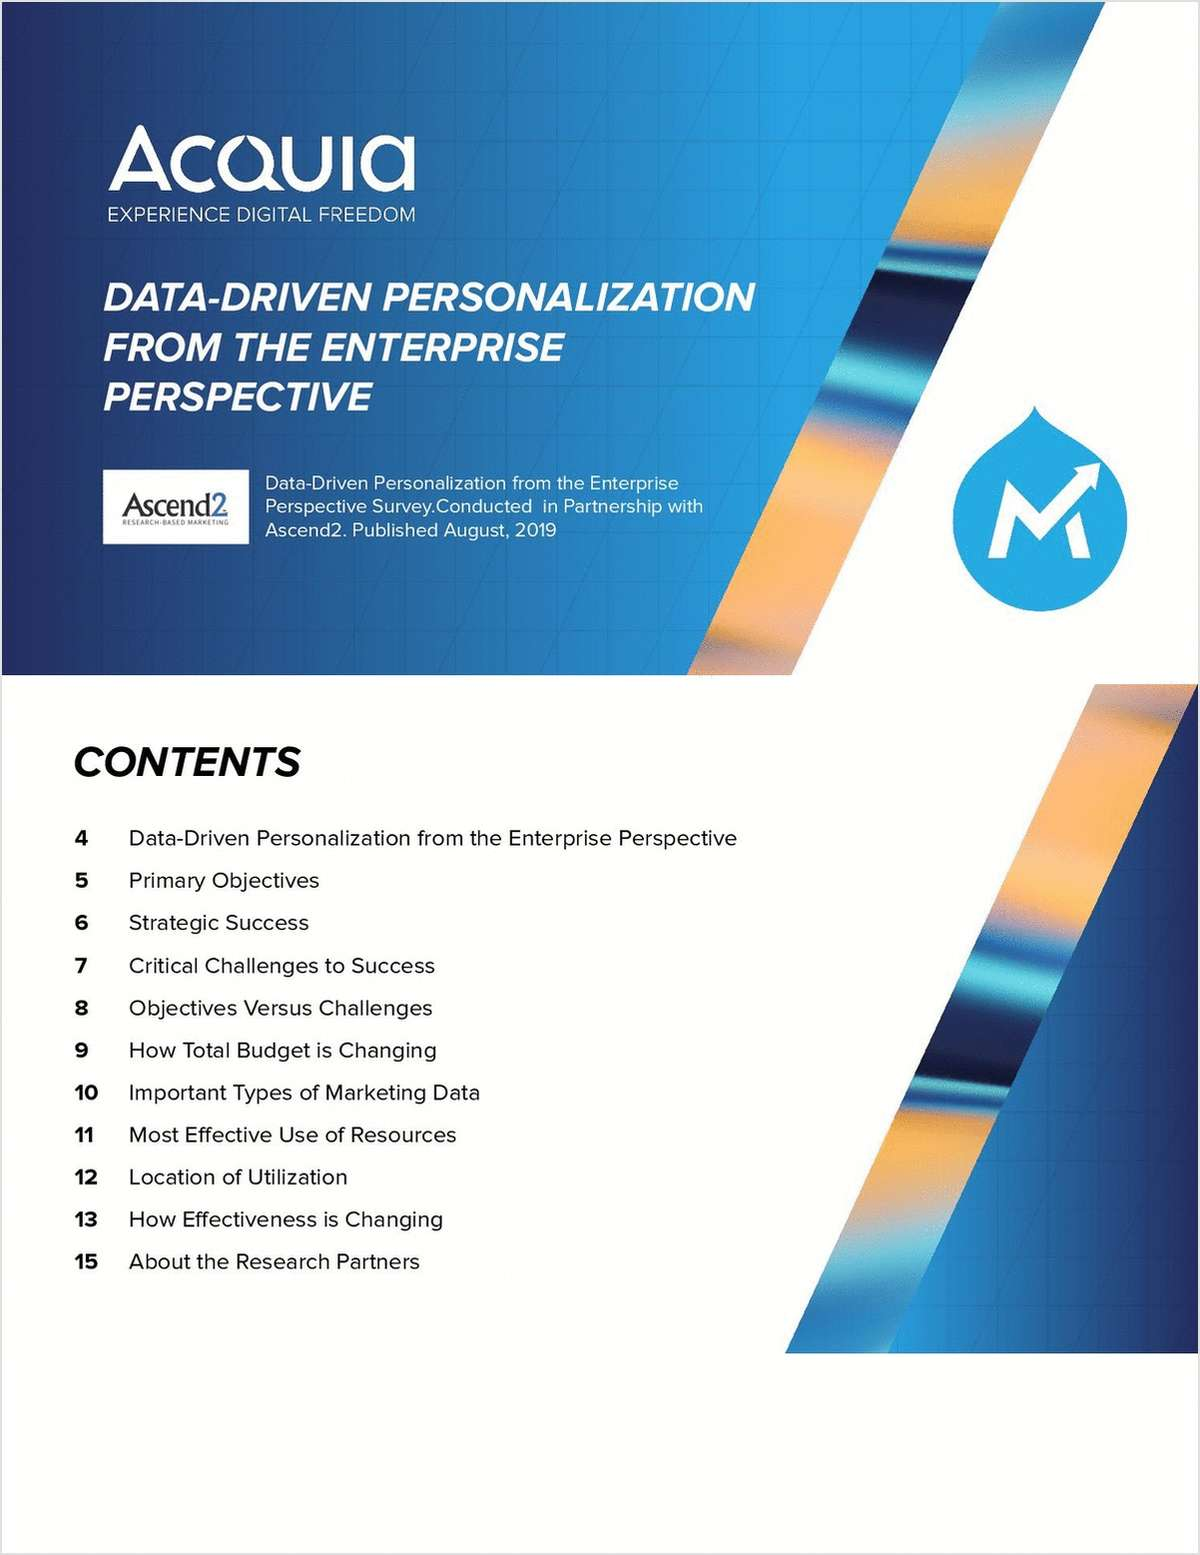 Data-Driven Personalization from the Enterprise Perspective